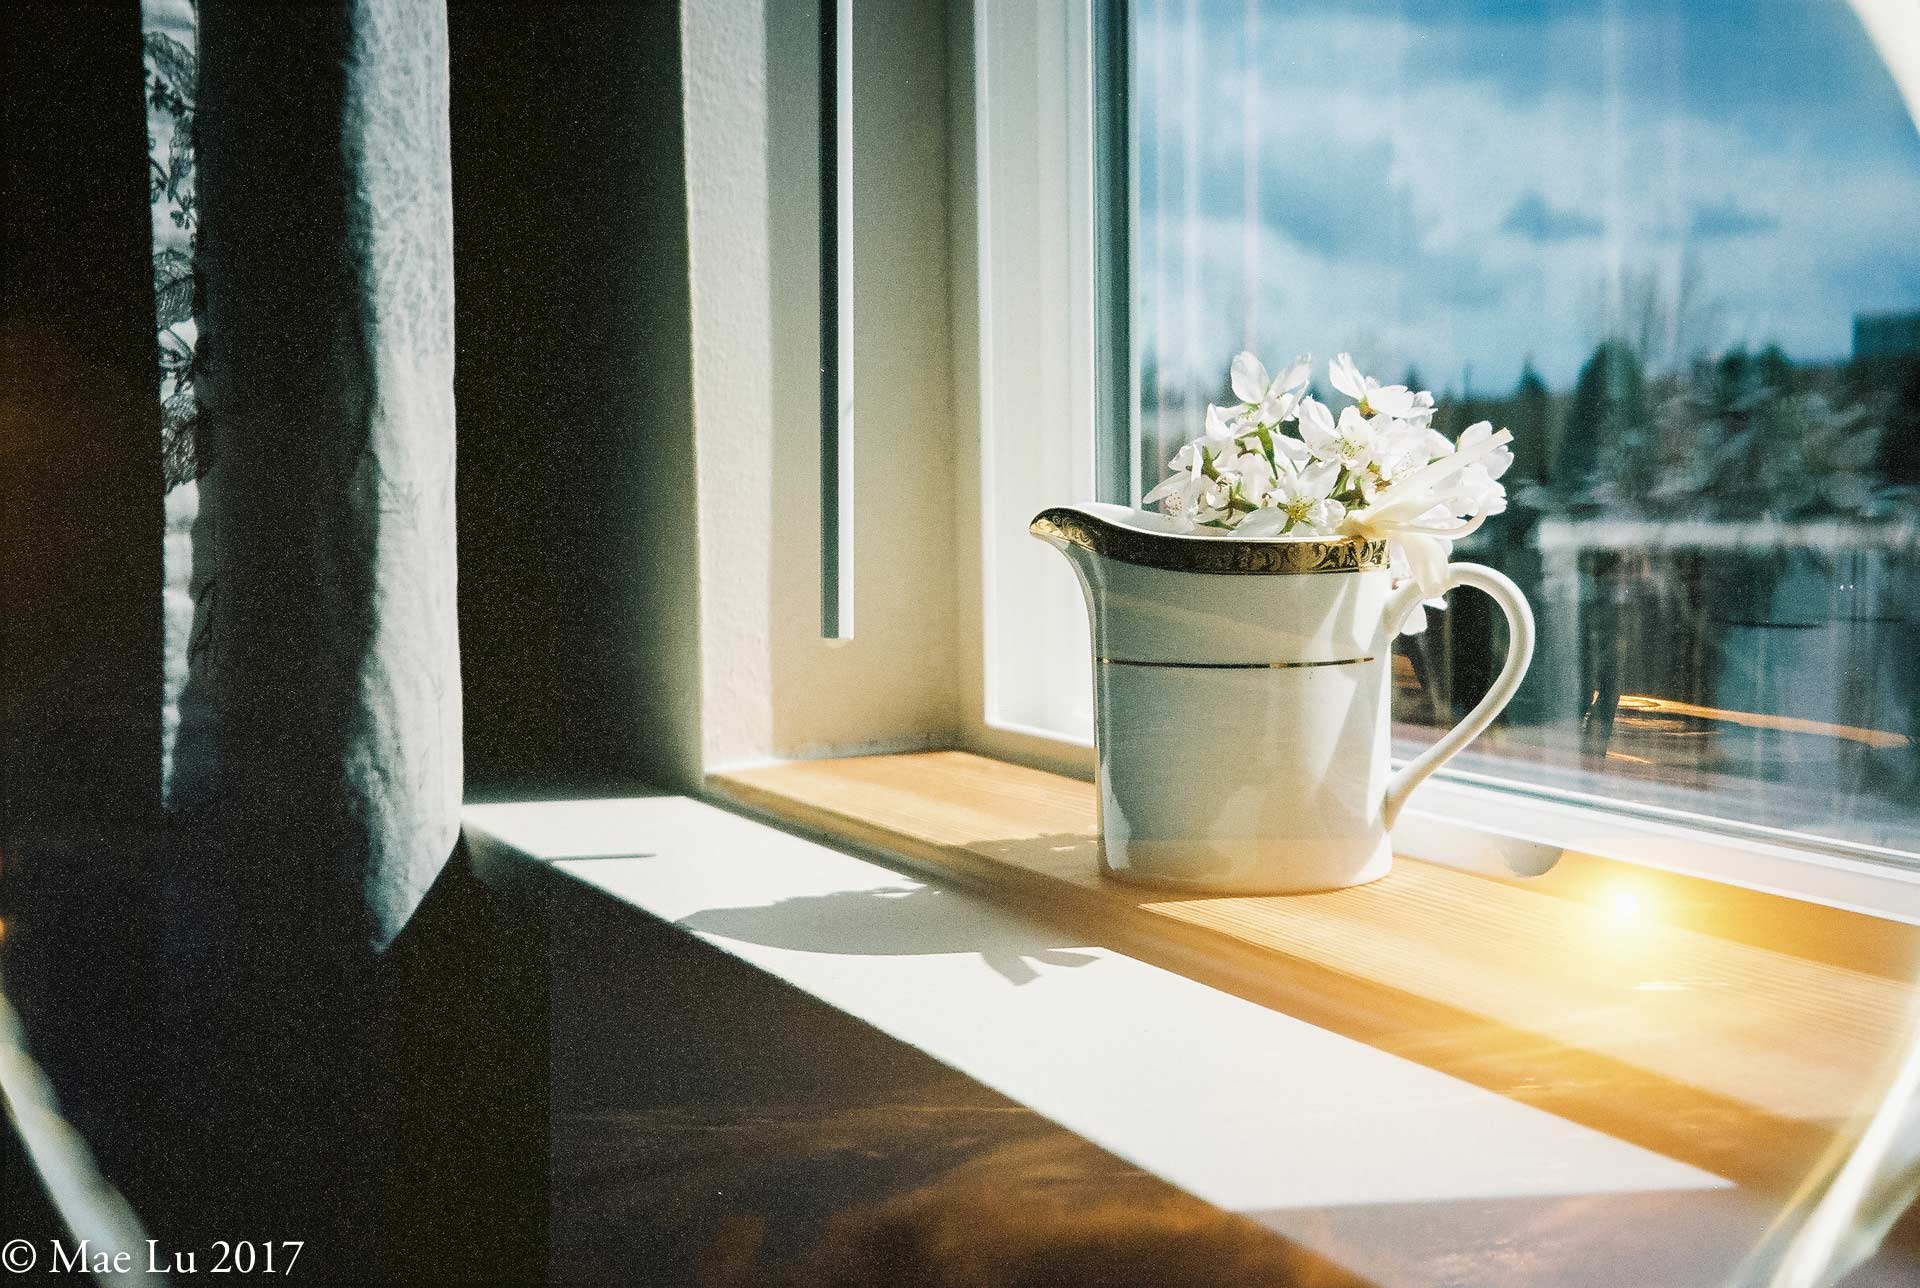 thereafterish film is not dead photo of cherry blossom flowers in a cup on windowsill